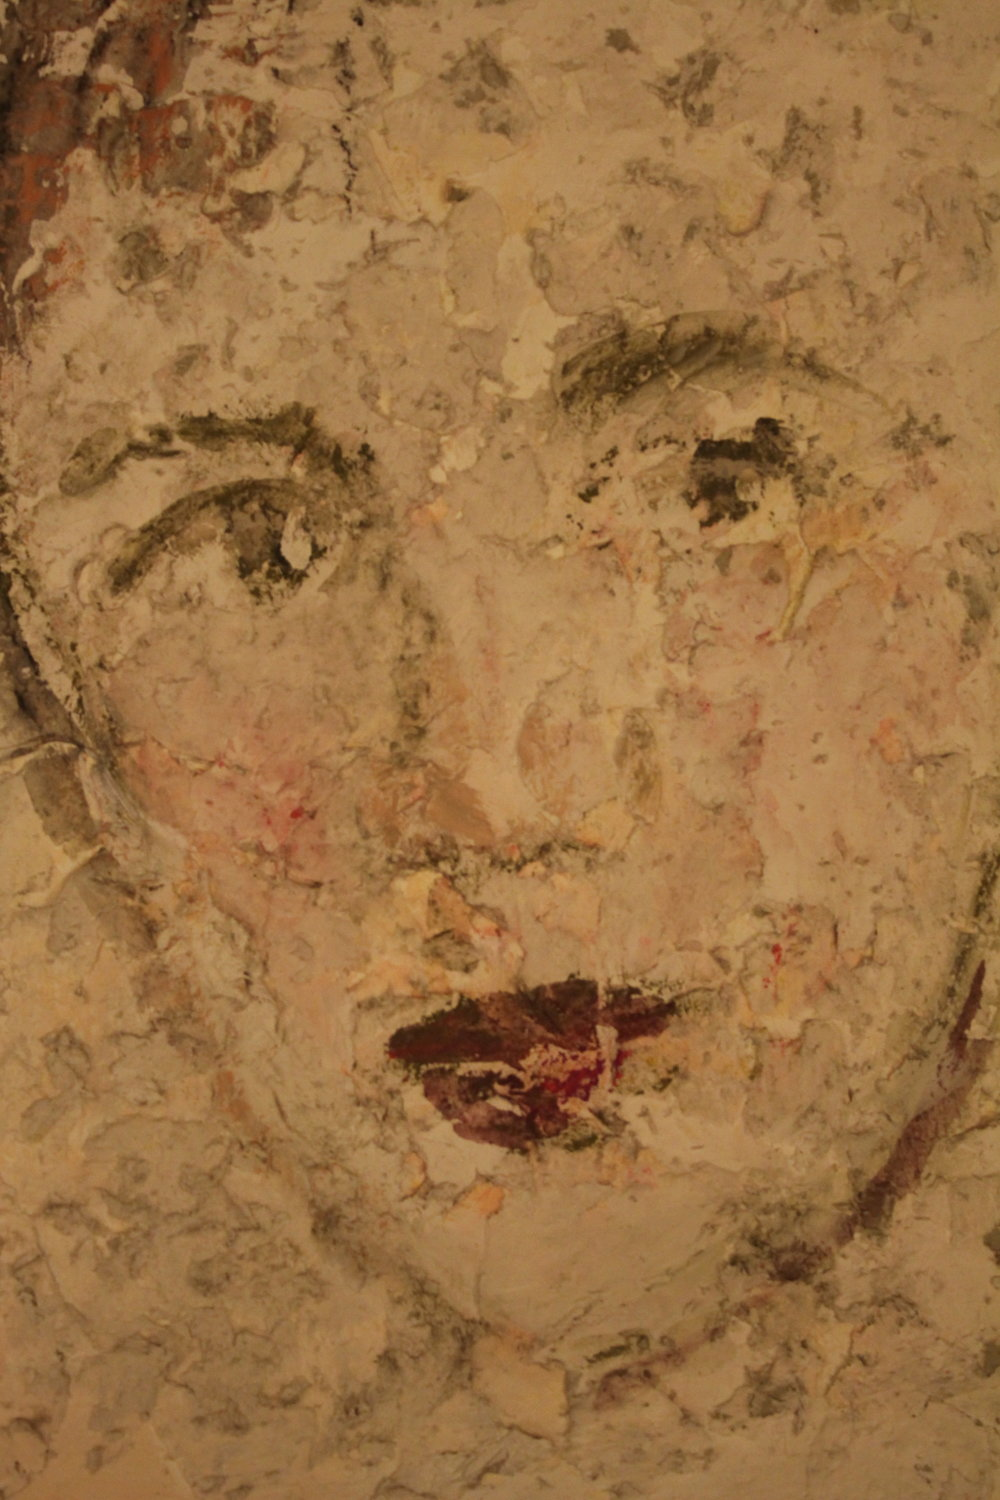 If This Wall Could Talk (Unknown female face)